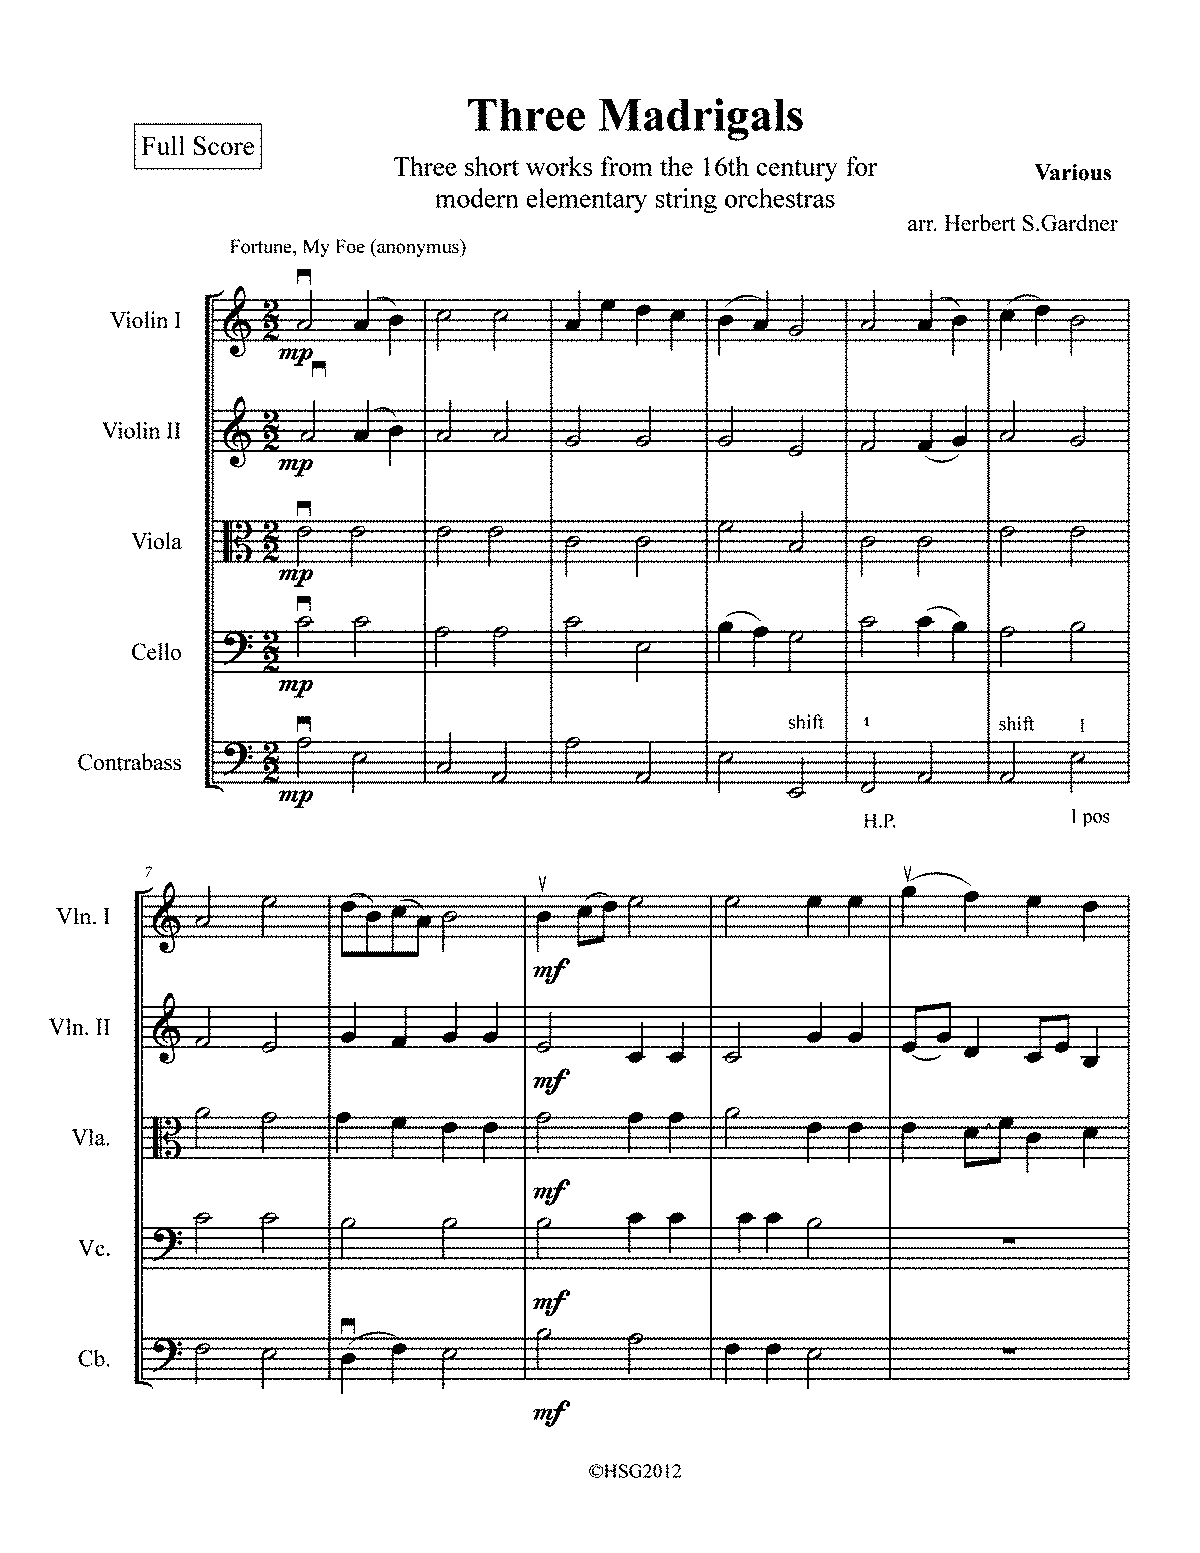 PMLP461959-Three Madrigals full score.pdf